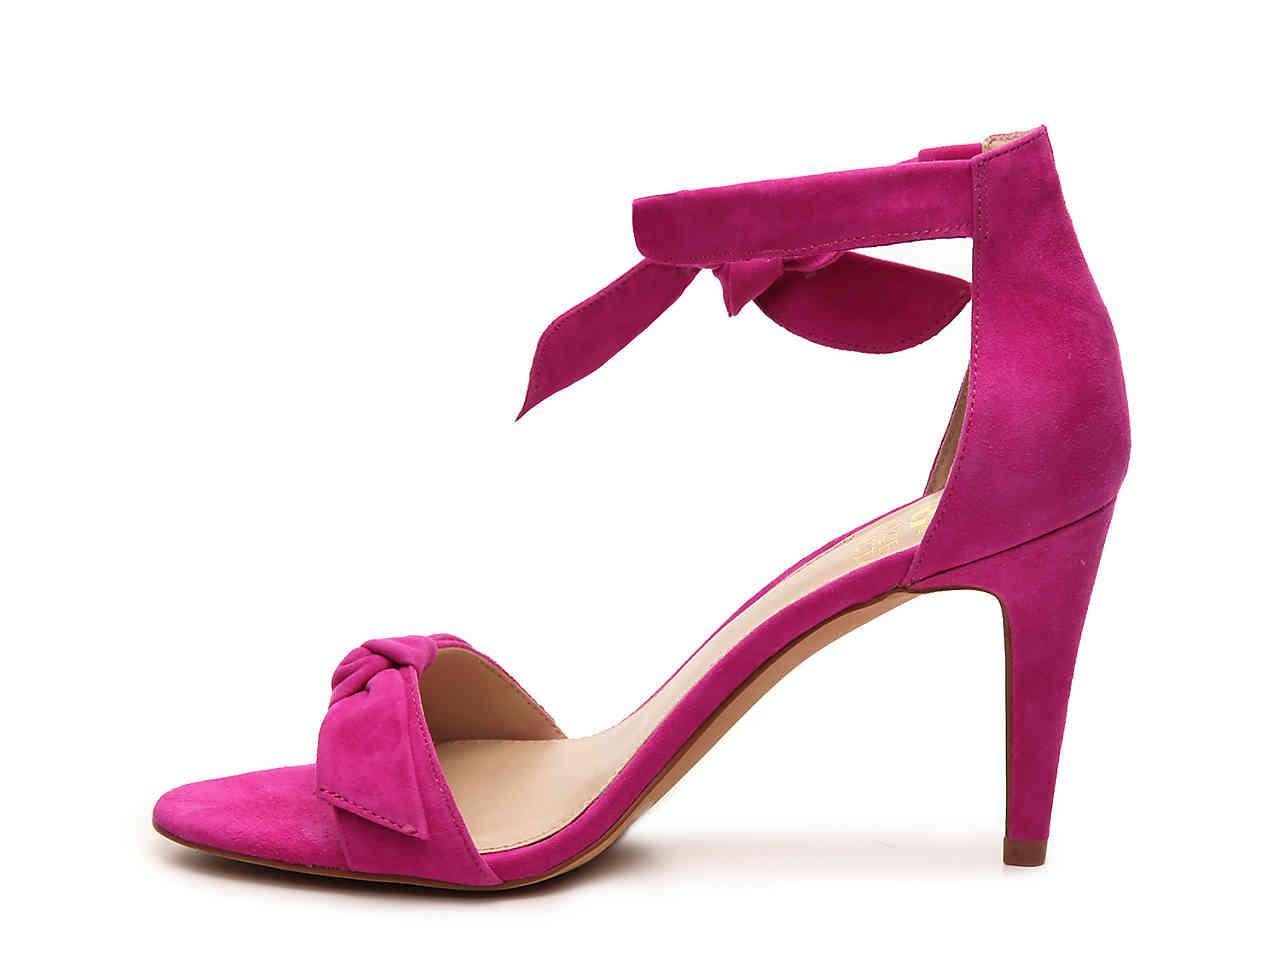 8e6cdf852ad Lyst - Vince Camuto Camylla Sandal in Pink